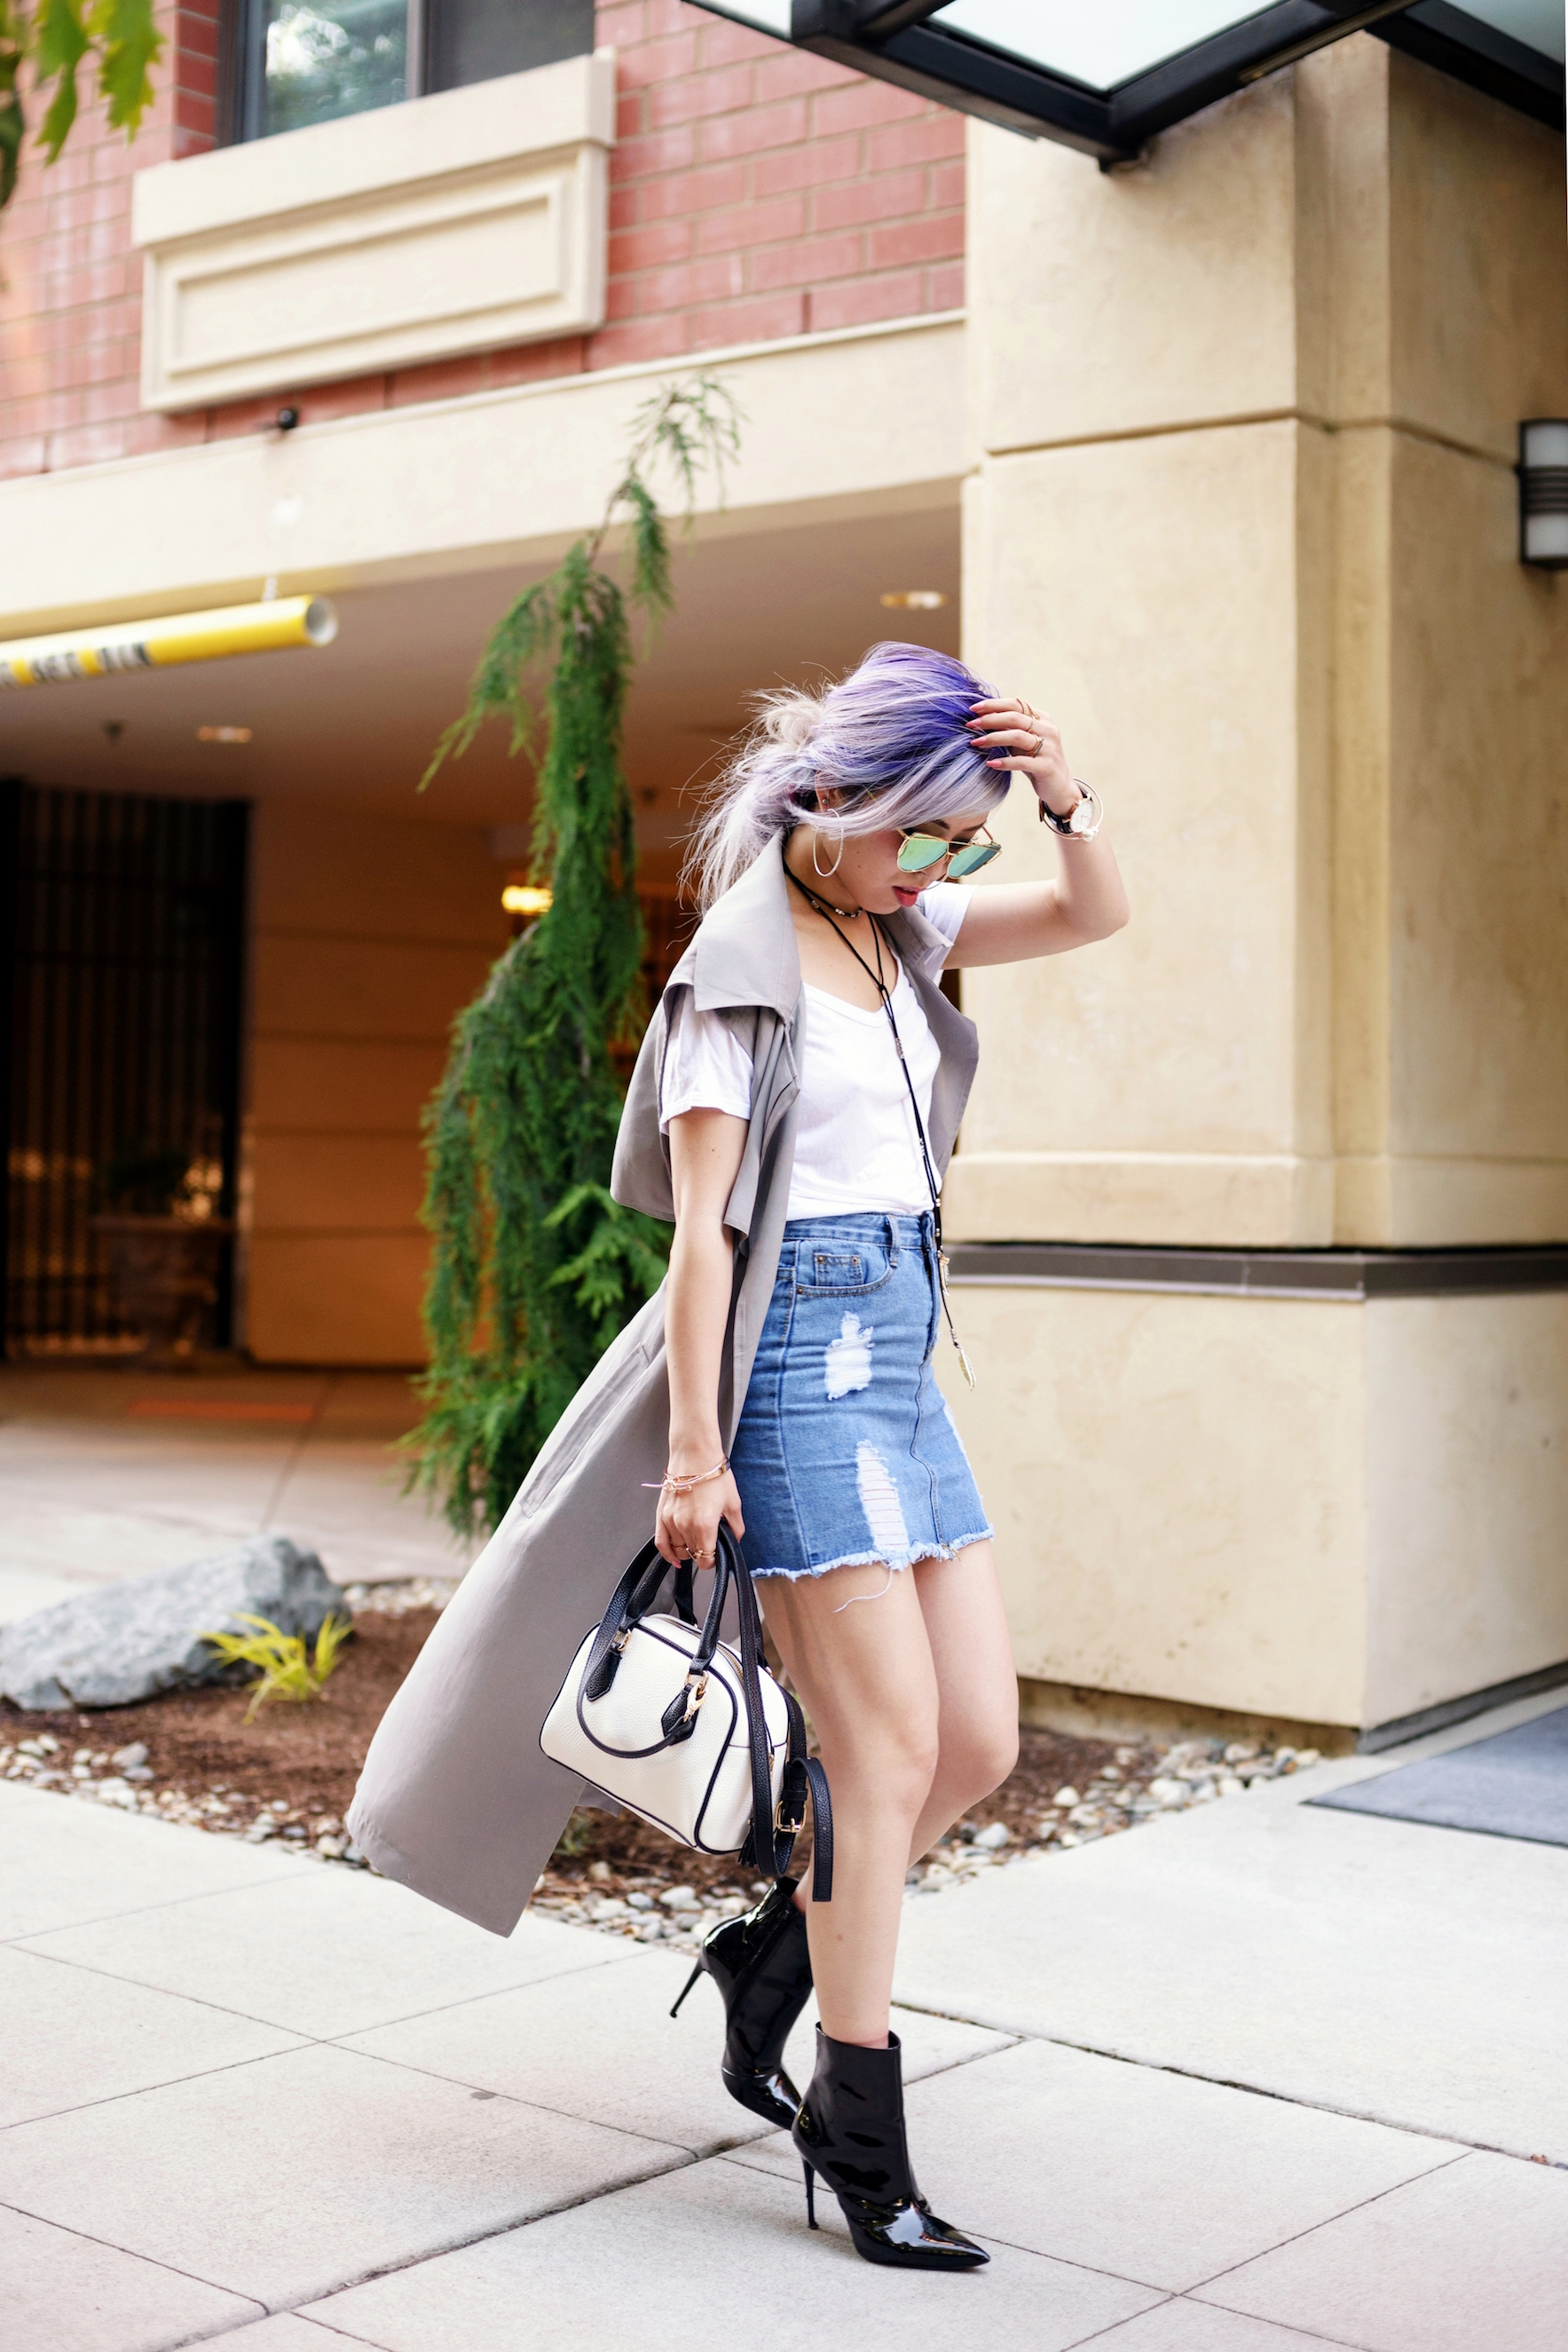 Dezzal Grey Trench Coat_TOPSHOP White T-shirt_She Inside Highwaisted Denim Mini Skit_ALDO Patent Boots_ZARA Mini Bag_Suede Choker_Daniel Wellington Watch_Aikas Love Cloeset_Seattle Fashion Blogger from Japan_Lavender Hair_Messy low bun Hair 9